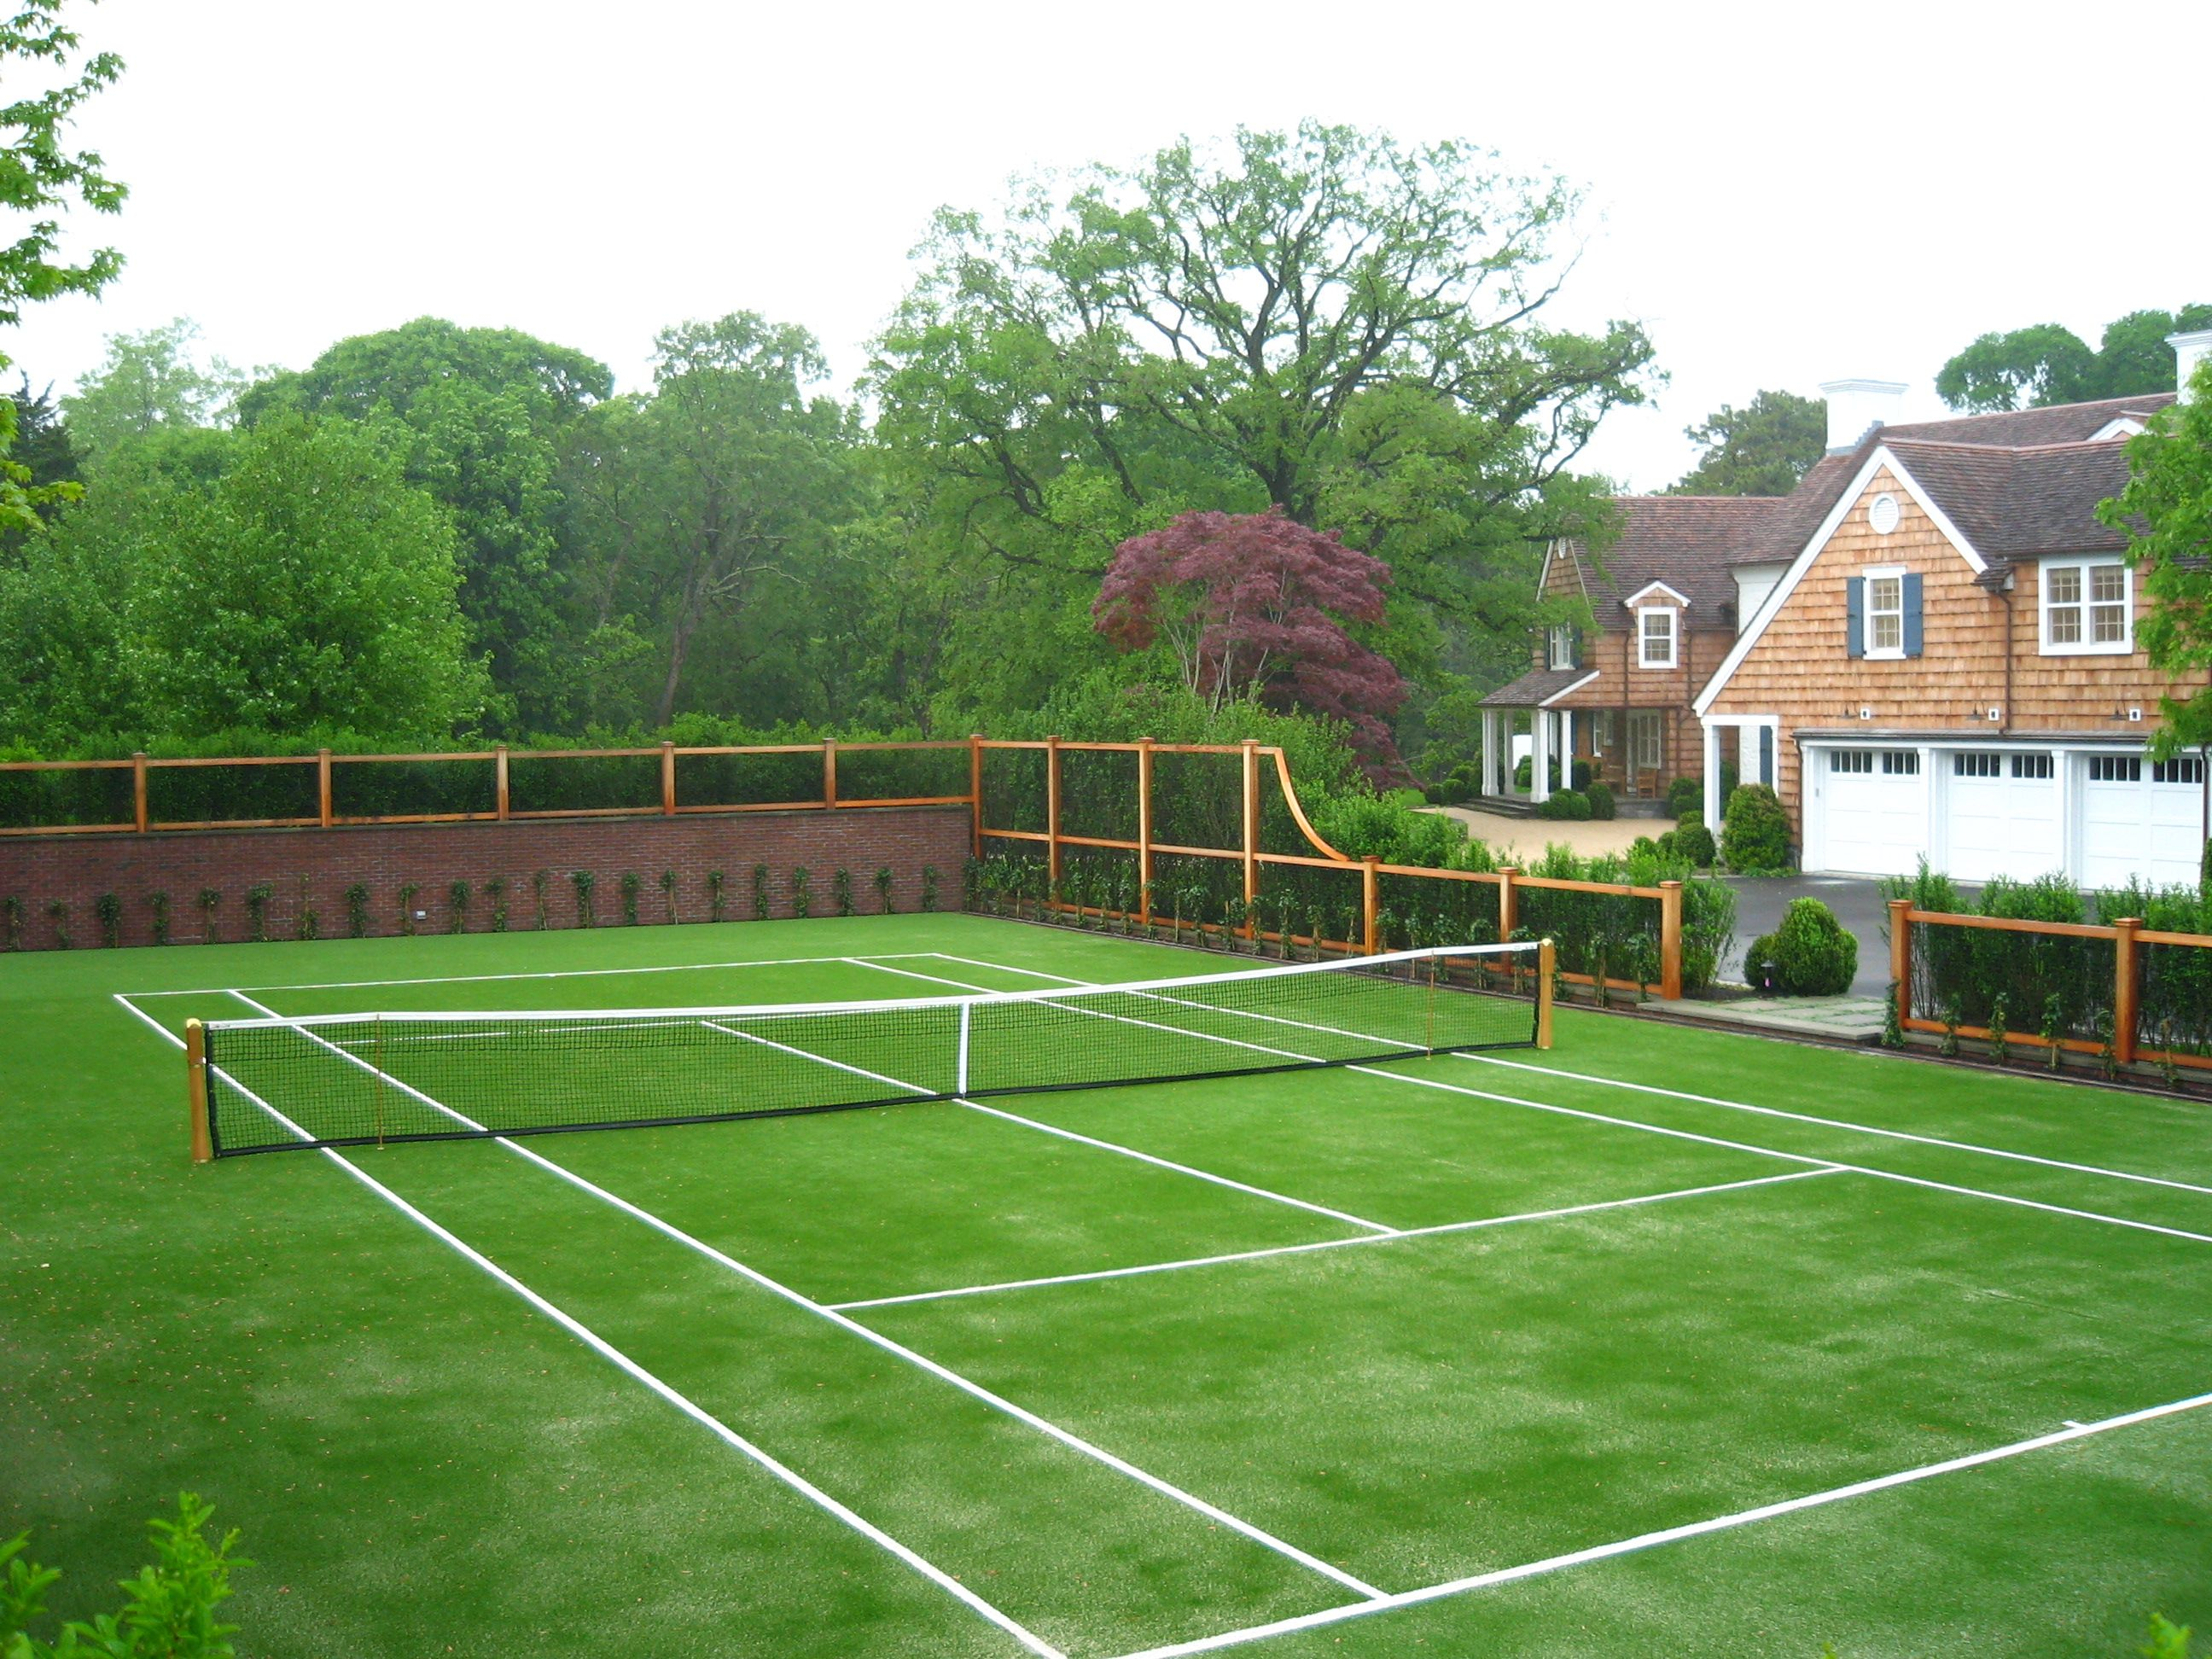 Backyard Tennis Court i like tennis, anyone ever played on grass? hamptons beauty | new